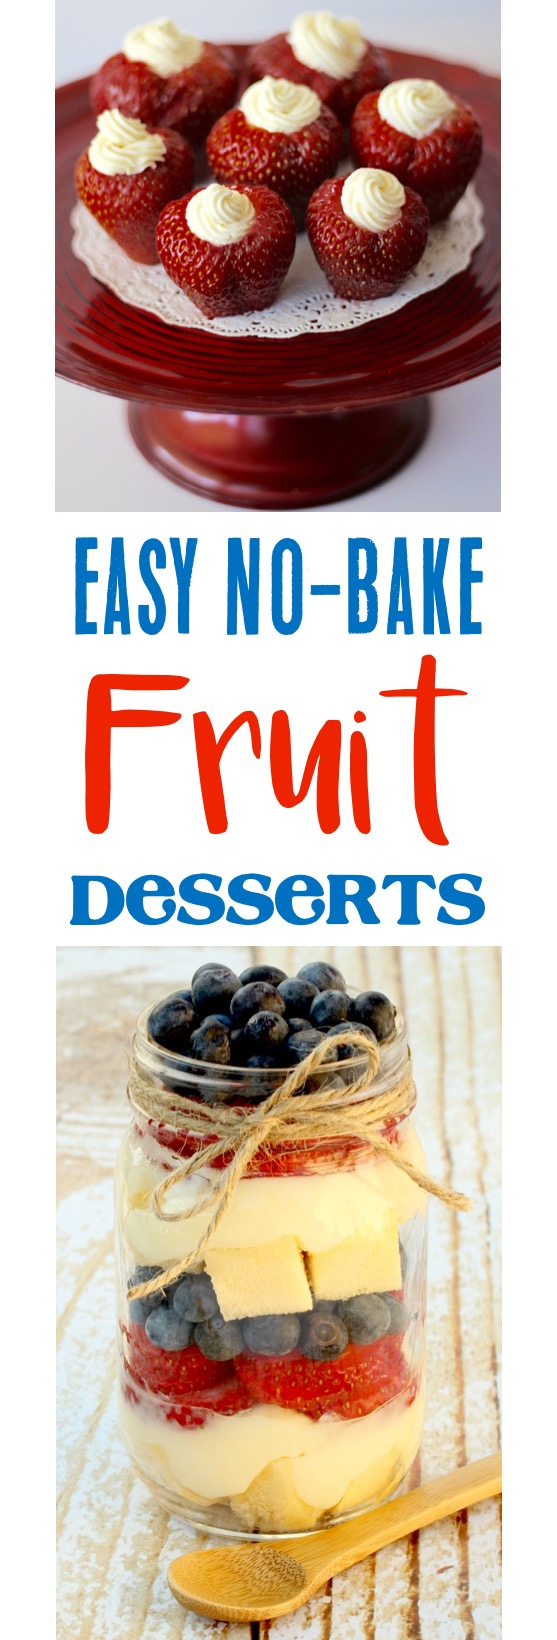 No Bake Desserts with Fruit from TheFrugalGirls.com